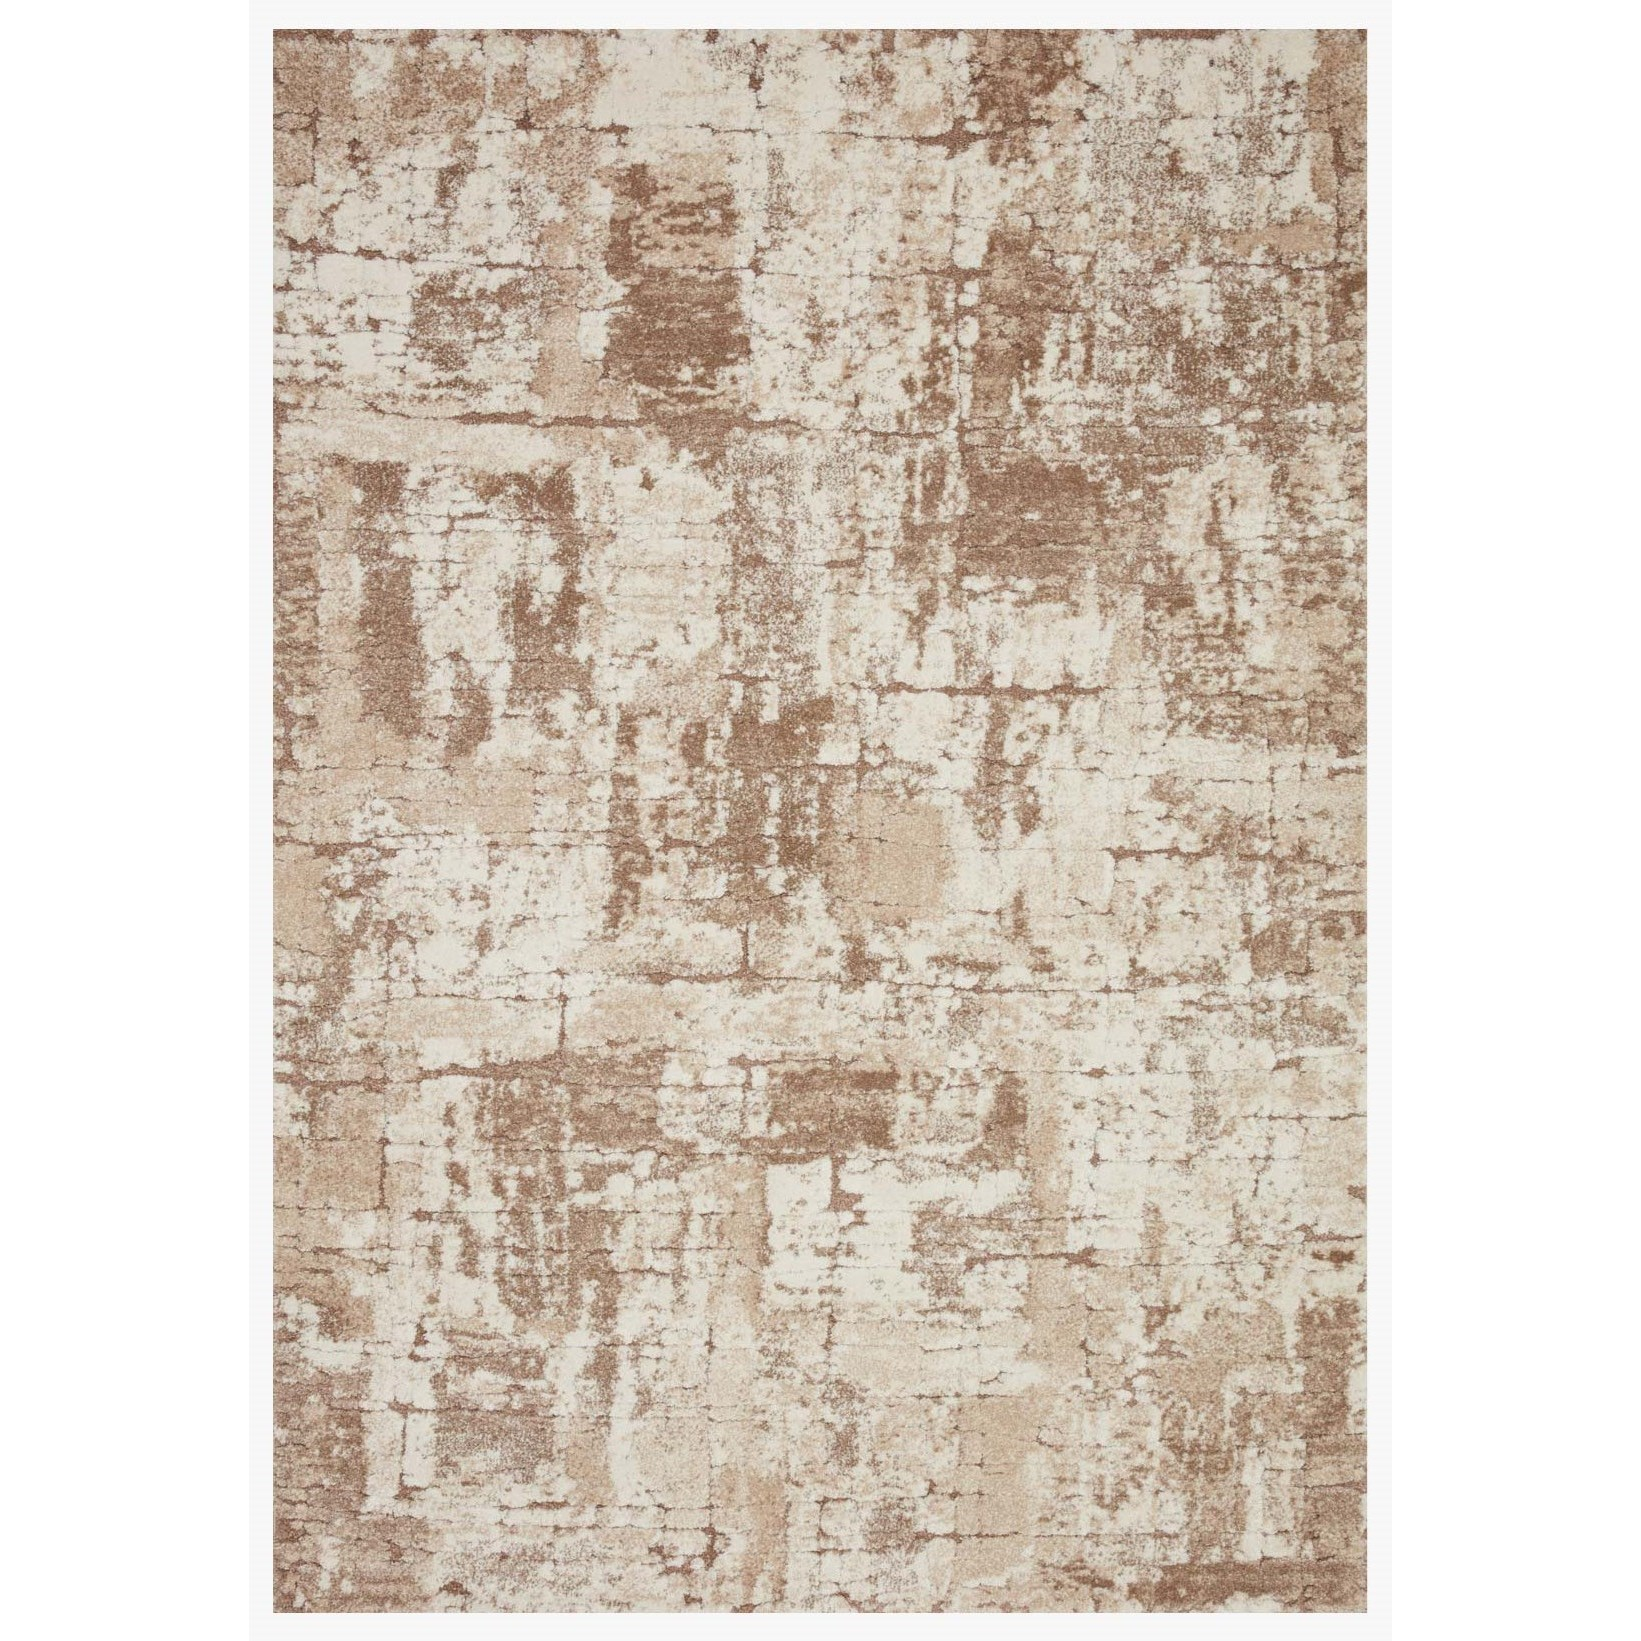 """Theory 2'7"""" x 4' Beige / Taupe Rug by Loloi Rugs at Virginia Furniture Market"""